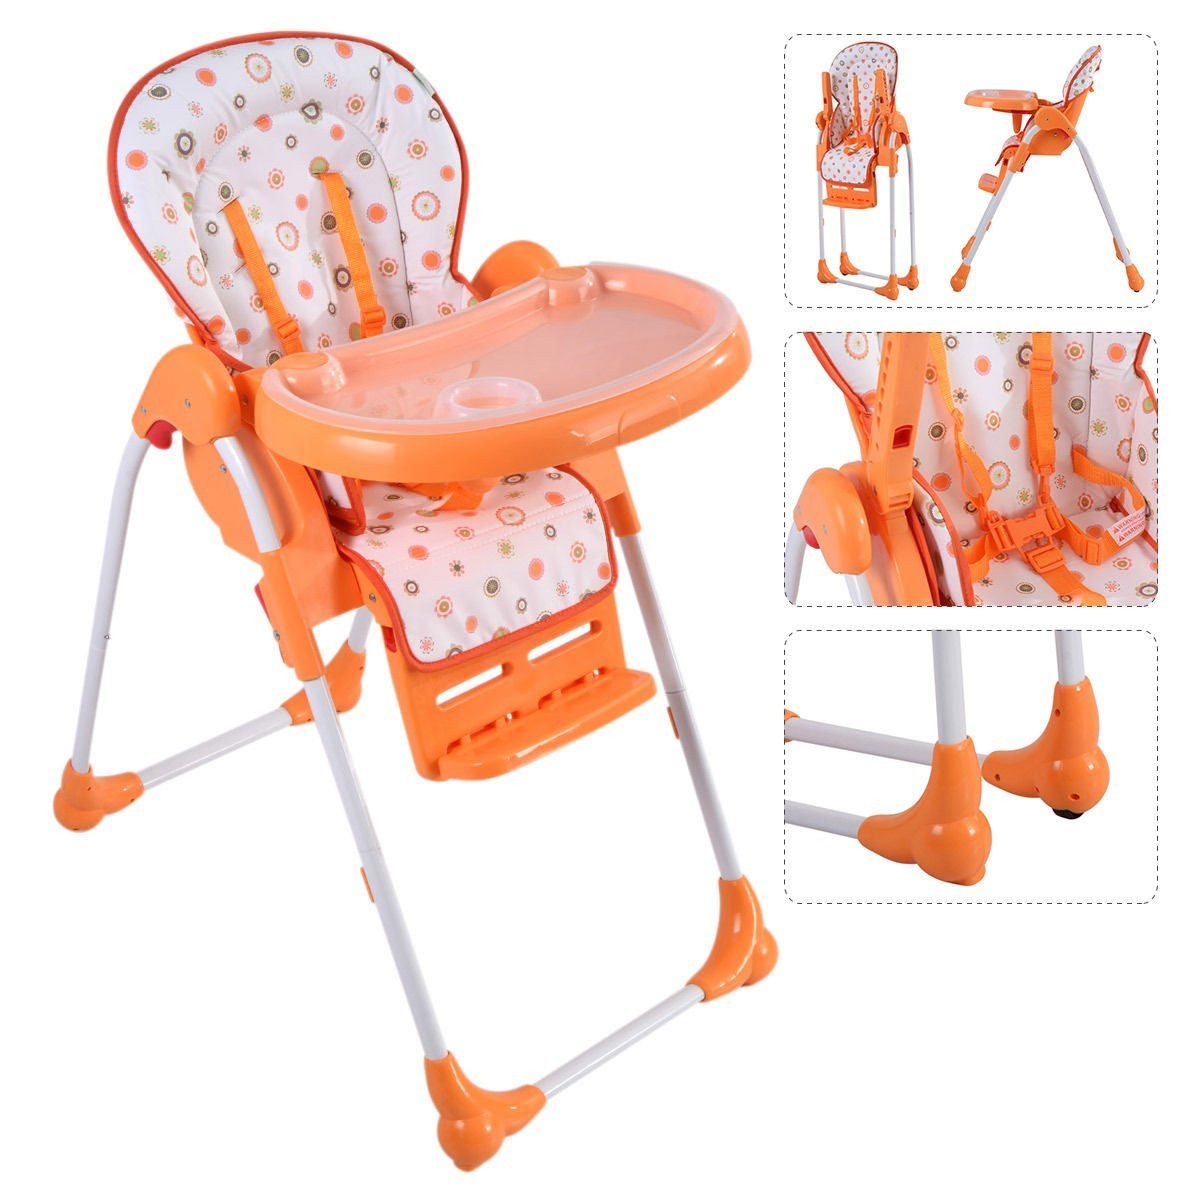 Adjustable Baby High Chair Infant Toddler Feeding Booster Seat Folding Orange by Apontus